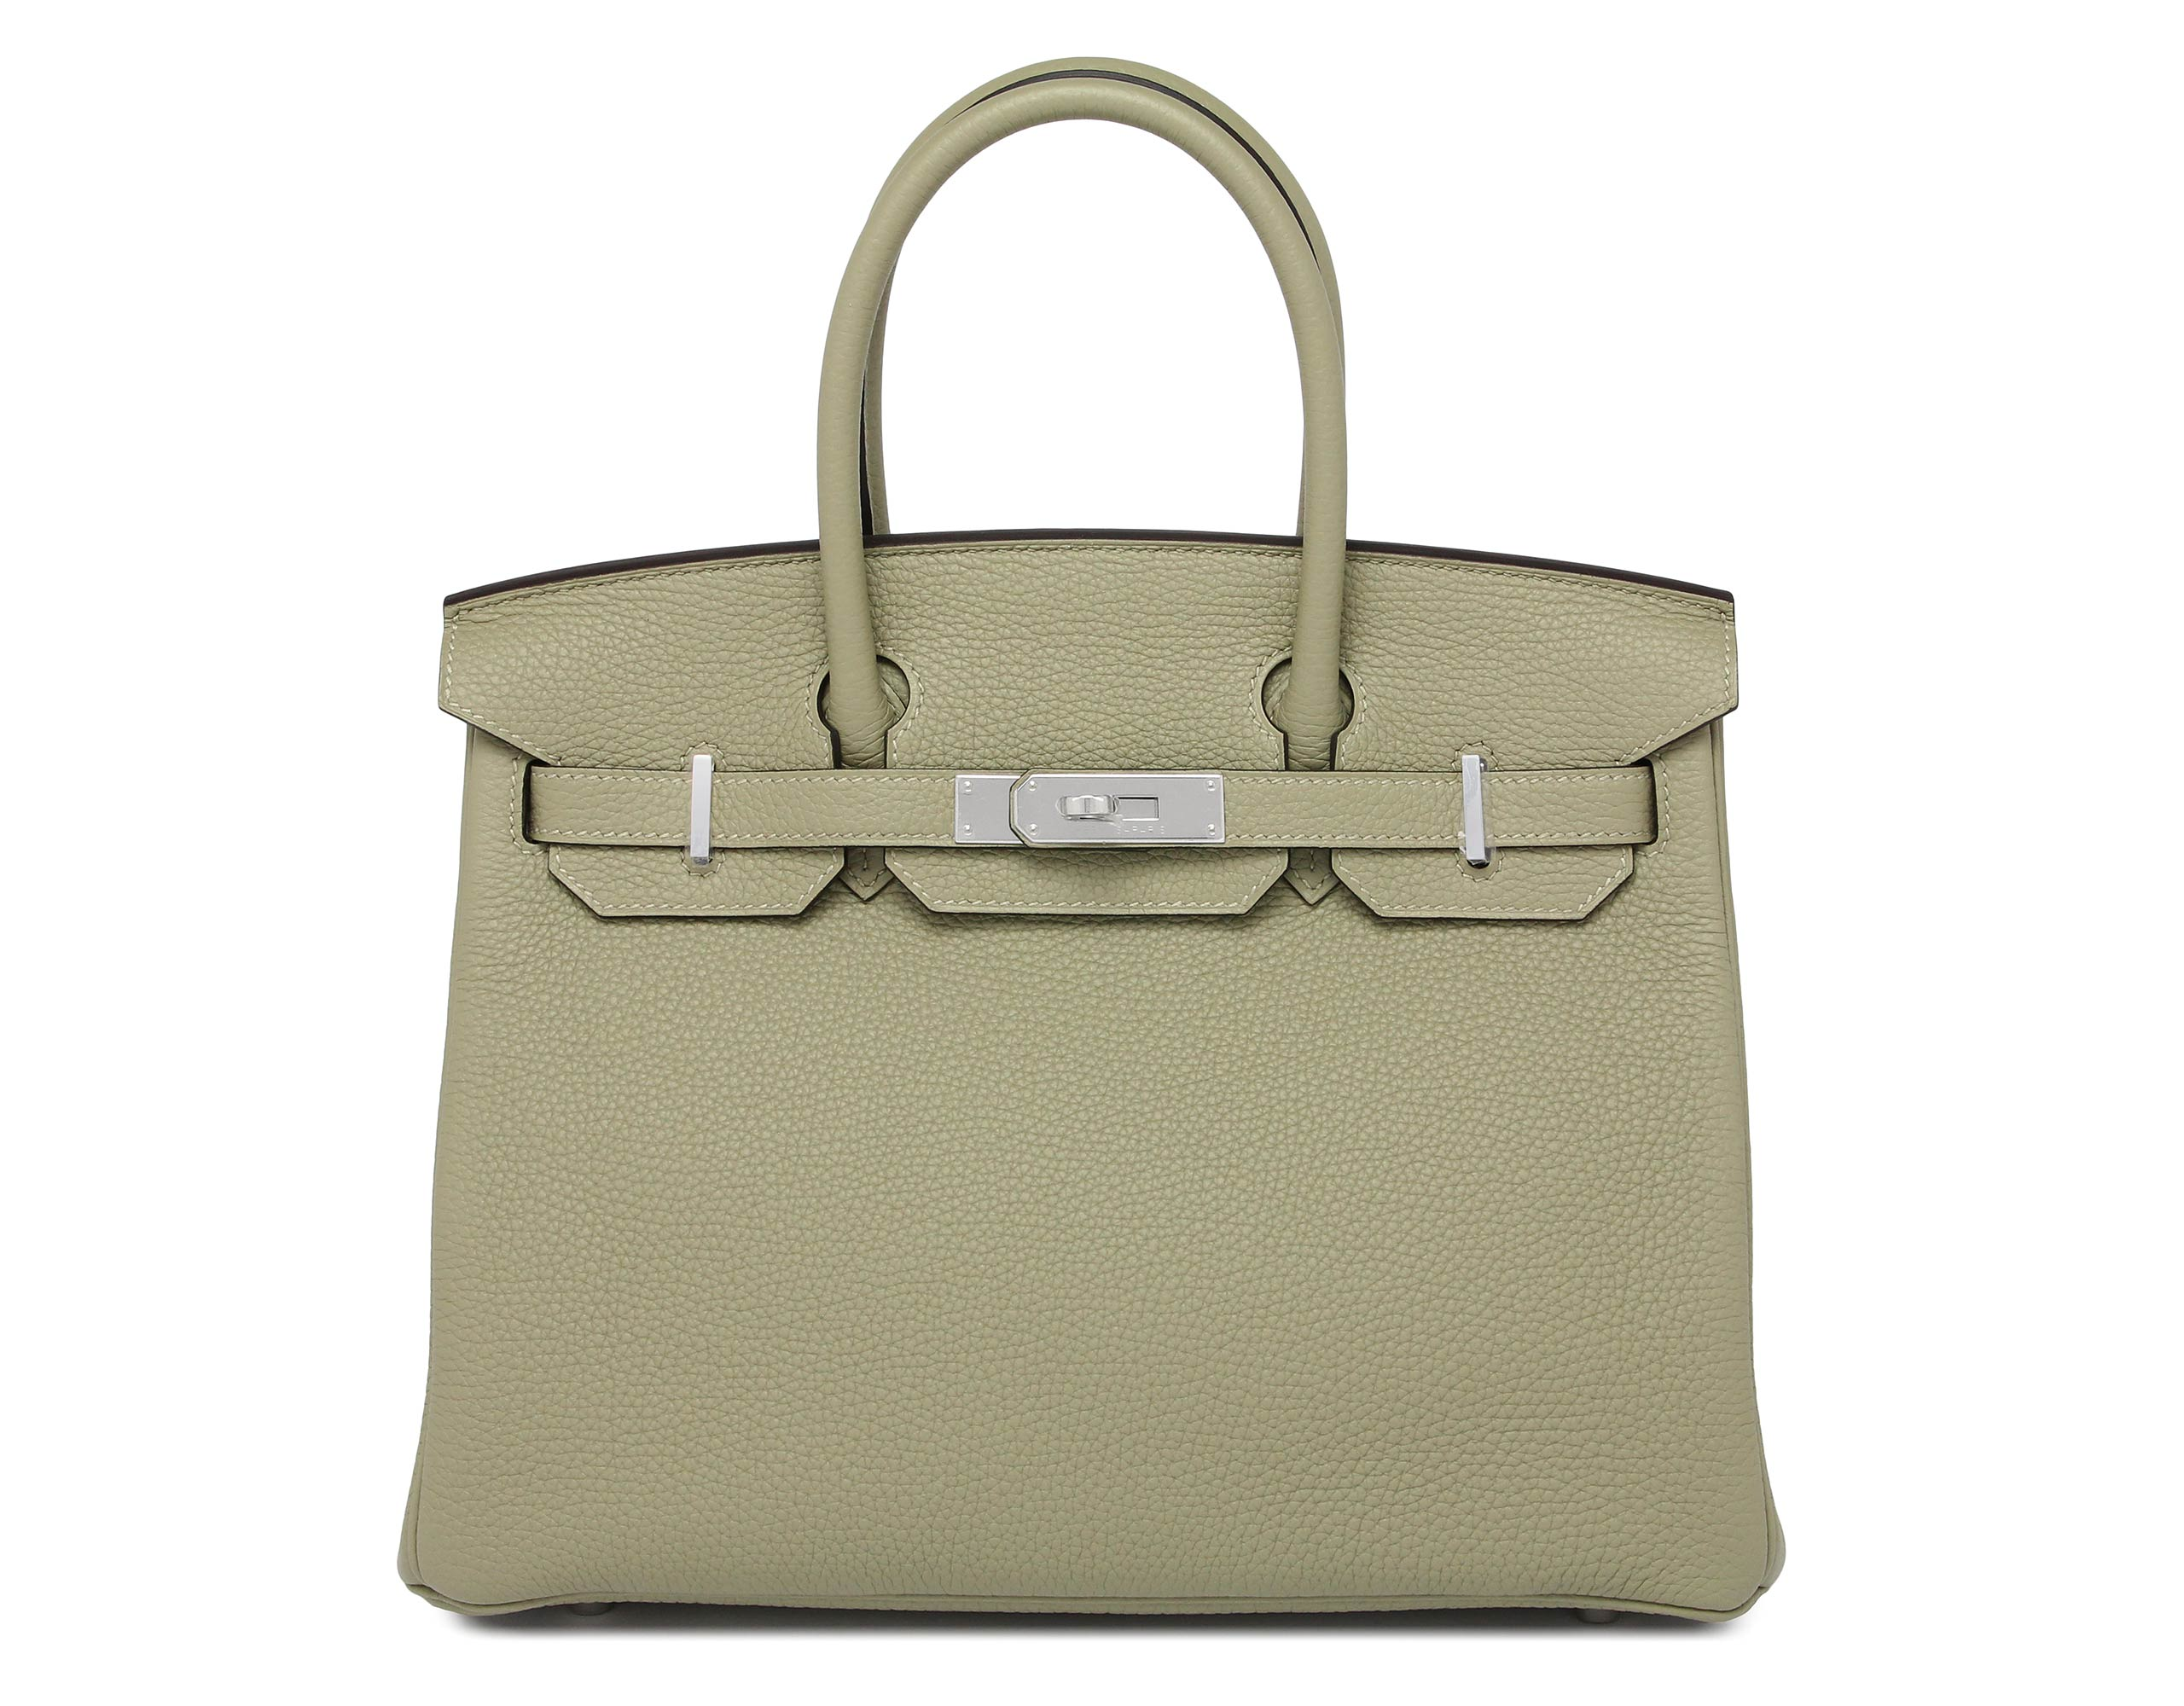 6a38287fdc22 Hermès - Bags Of Luxury